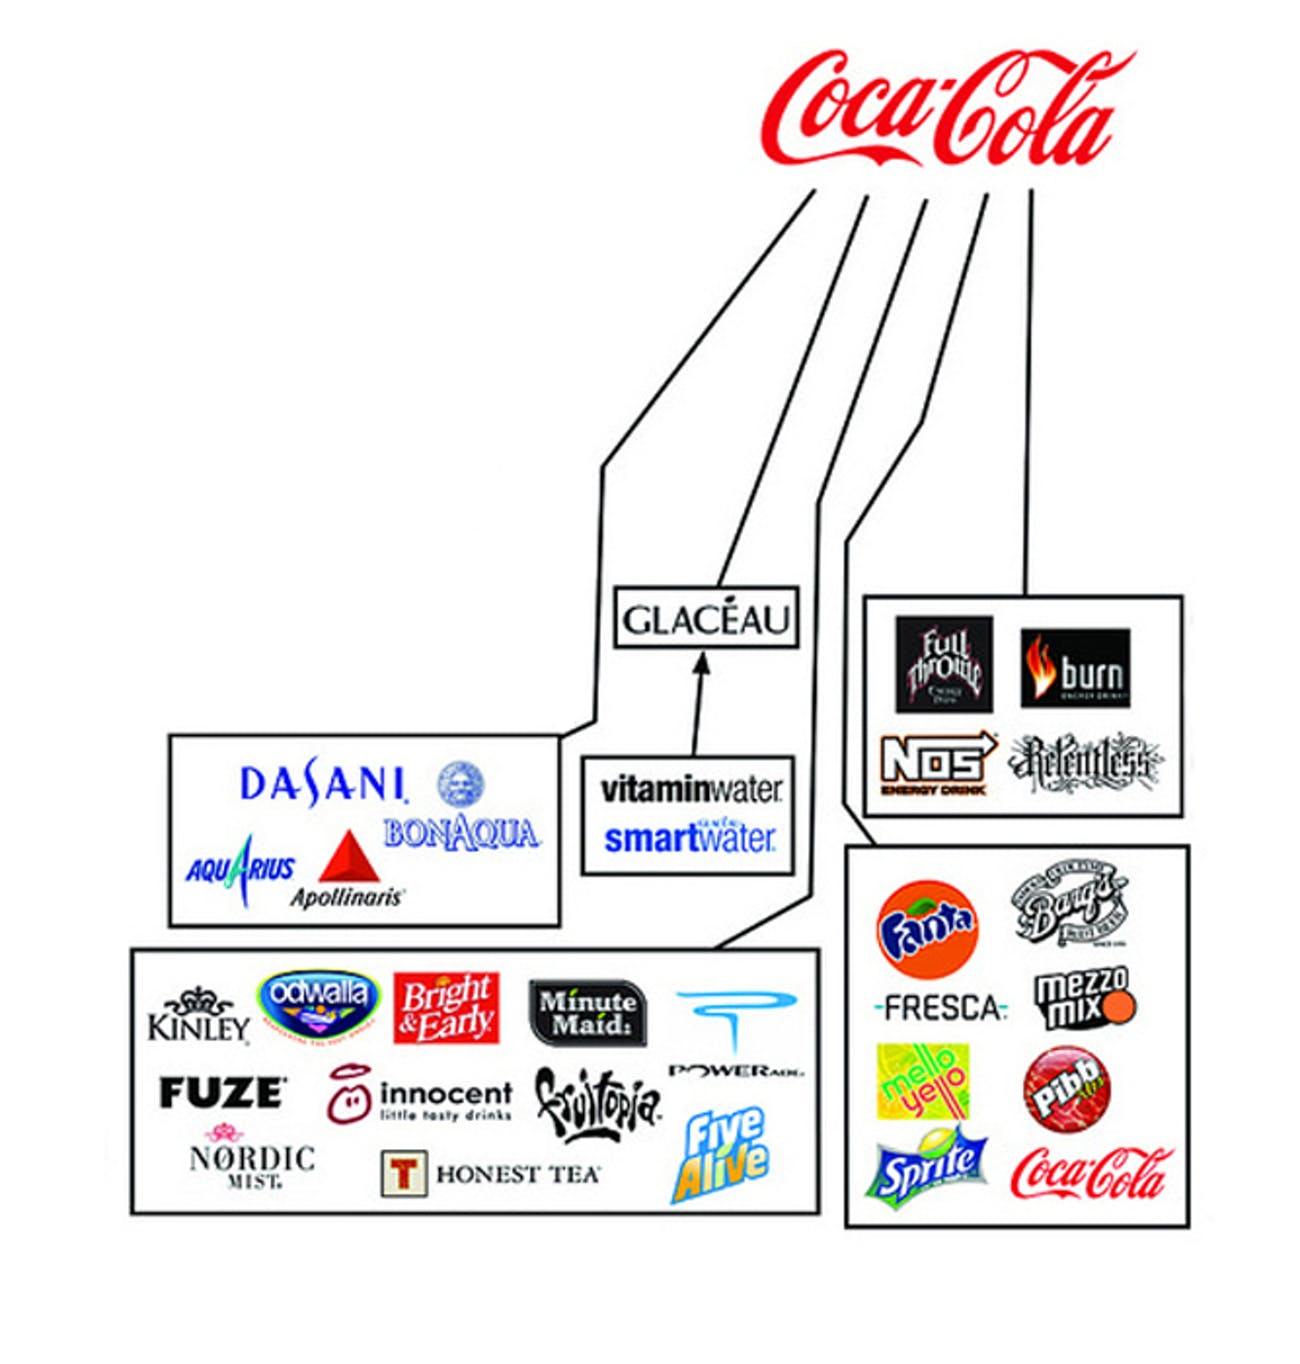 Coca Cola properties.